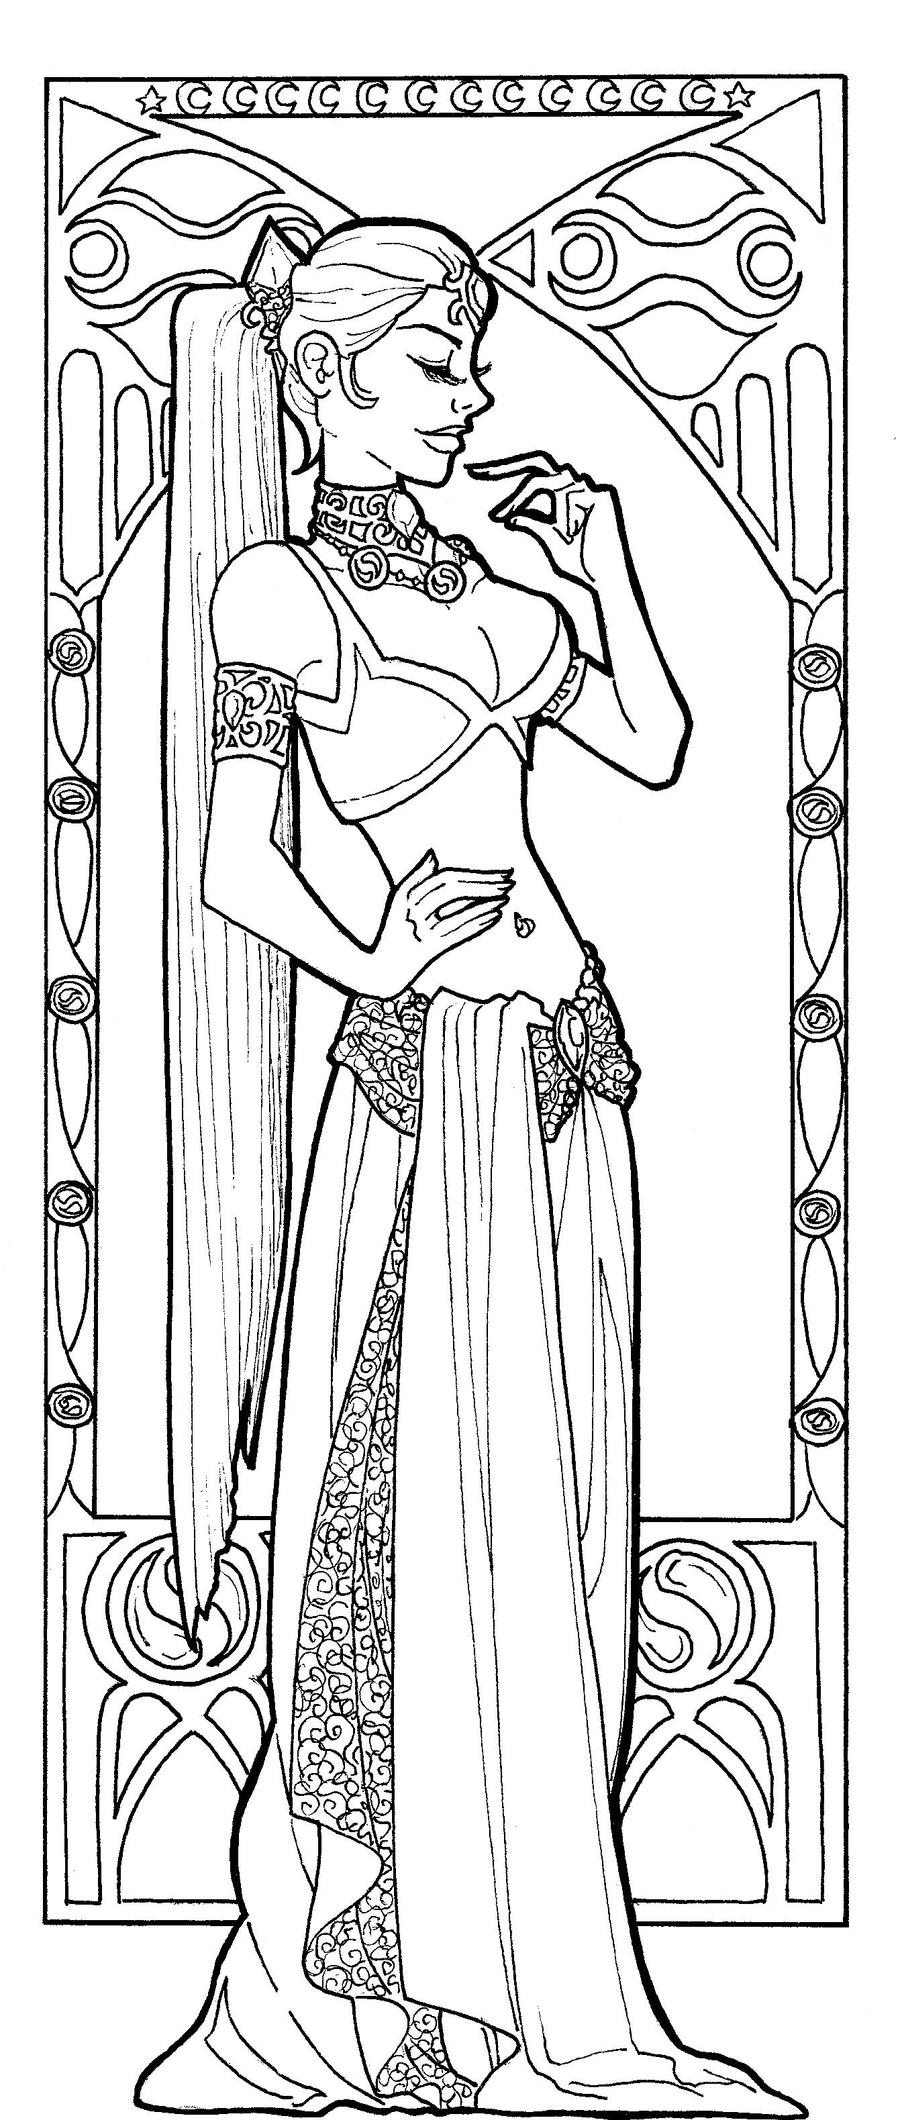 Russian Princess Coloring Pages : Art nouveau nabooru by ashiey chan on deviantart